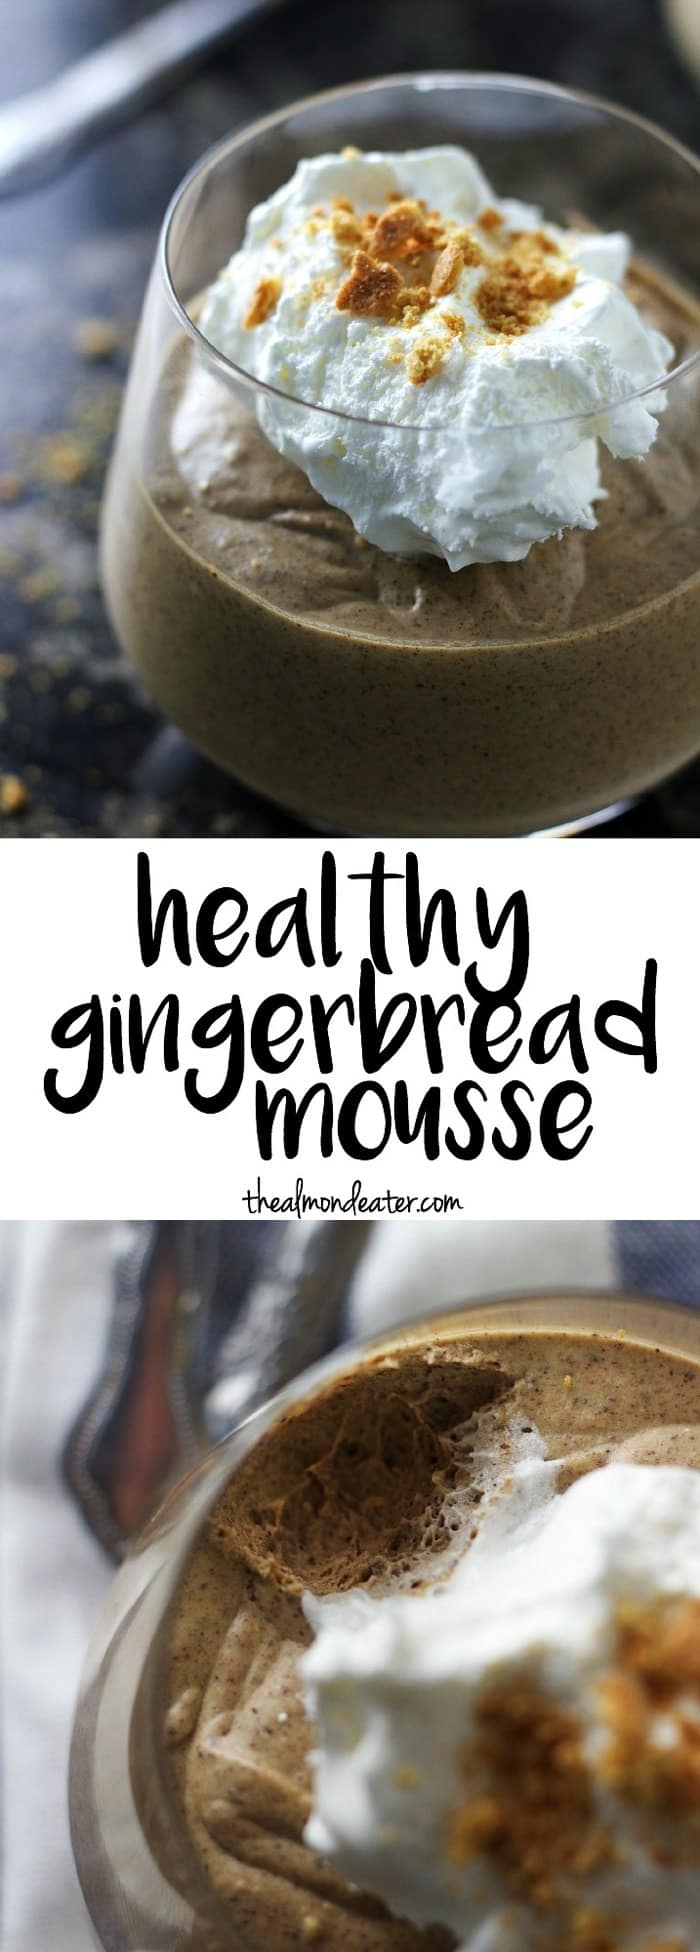 Healthy Gingerbread Mousse